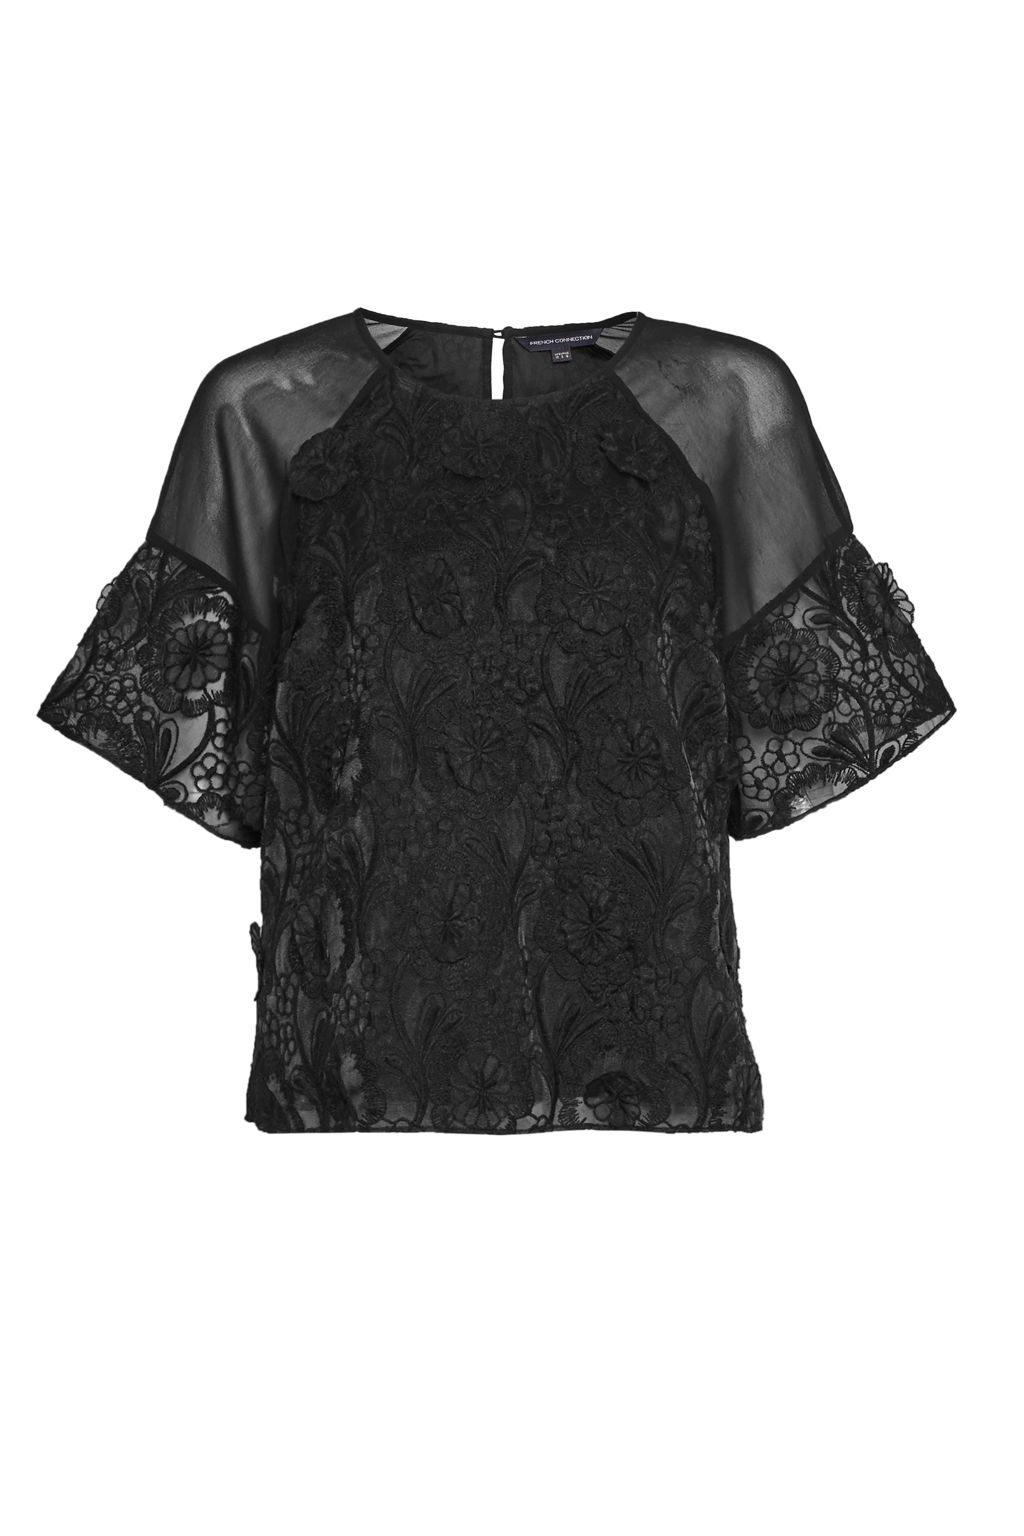 French Connection Apollo Lace Top, Black